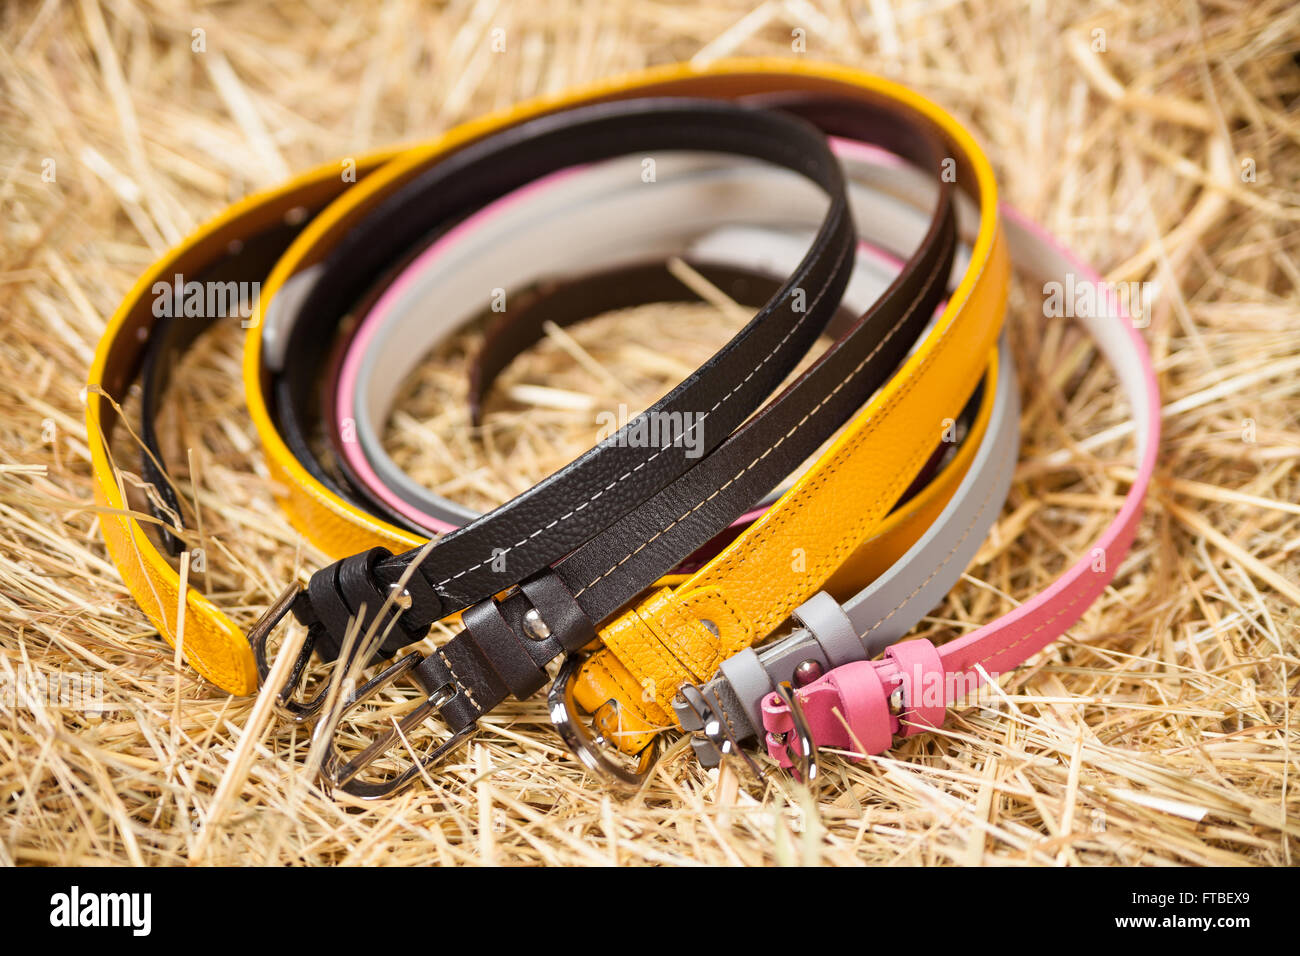 Female belts closeup - Stock Image